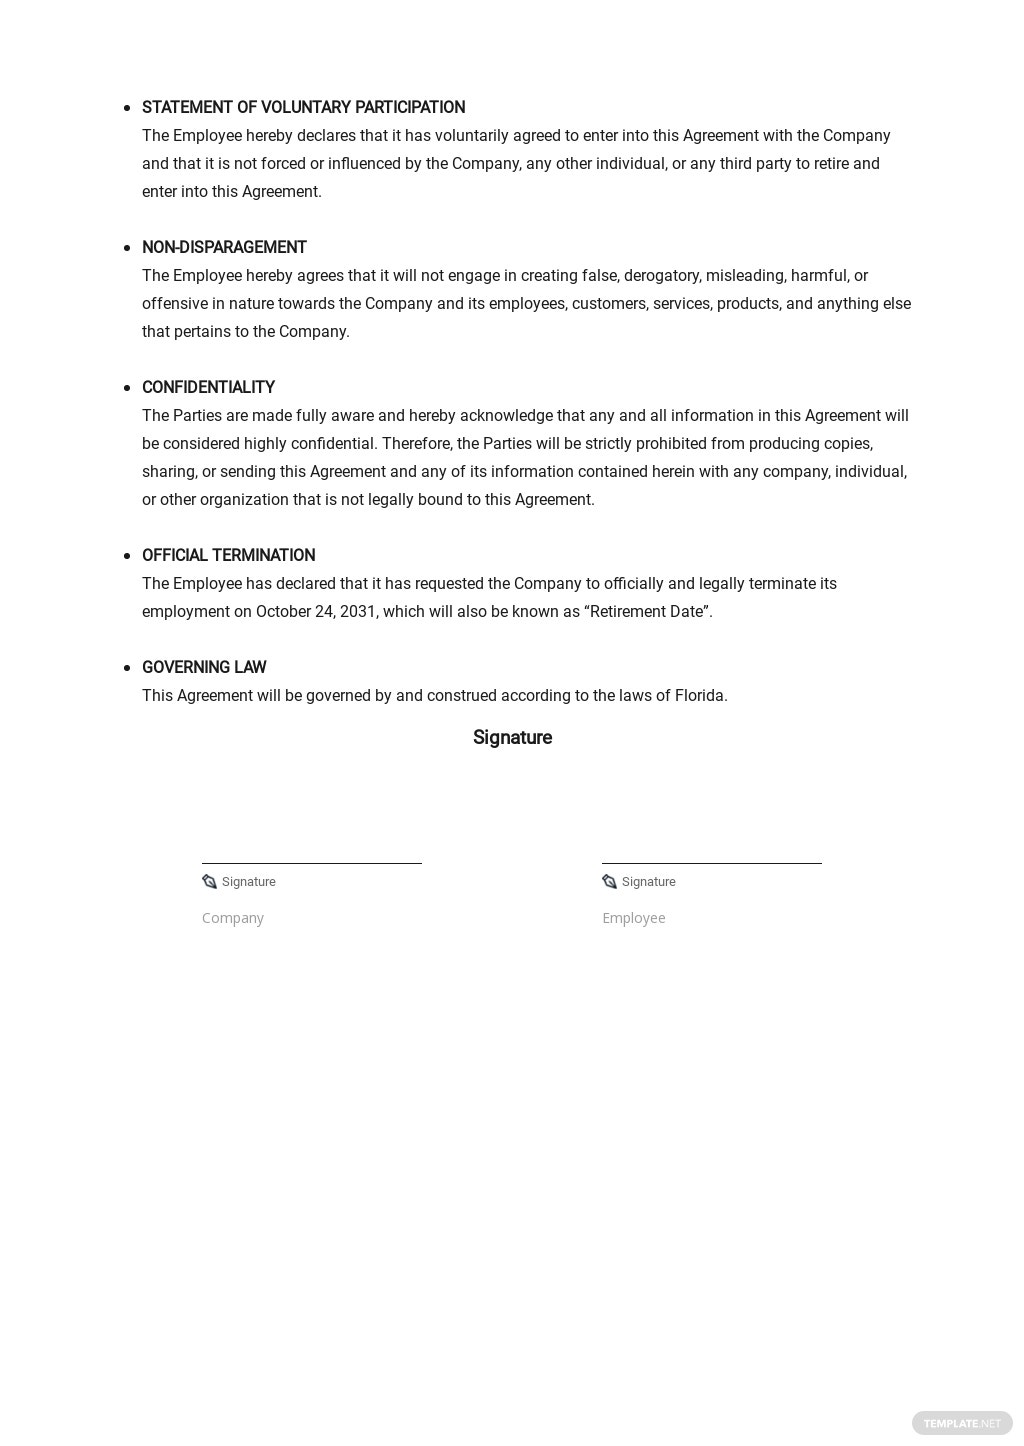 Restaurant Employee Retirement Agreement Template [Free PDF] - Google Docs, Word, Apple Pages